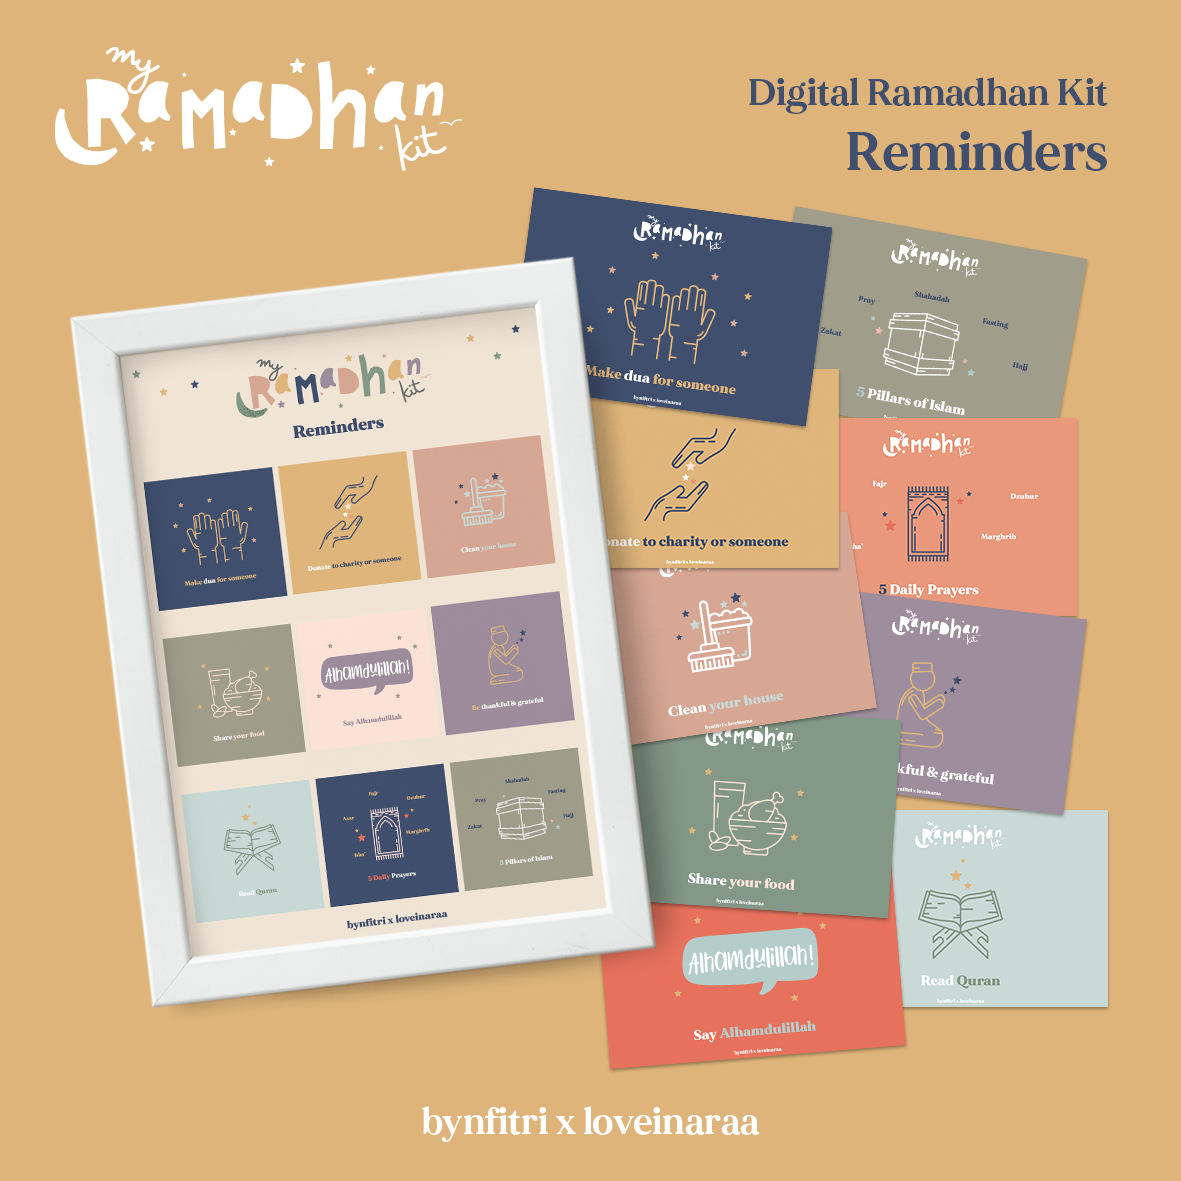 Digital Ramadhan Kit